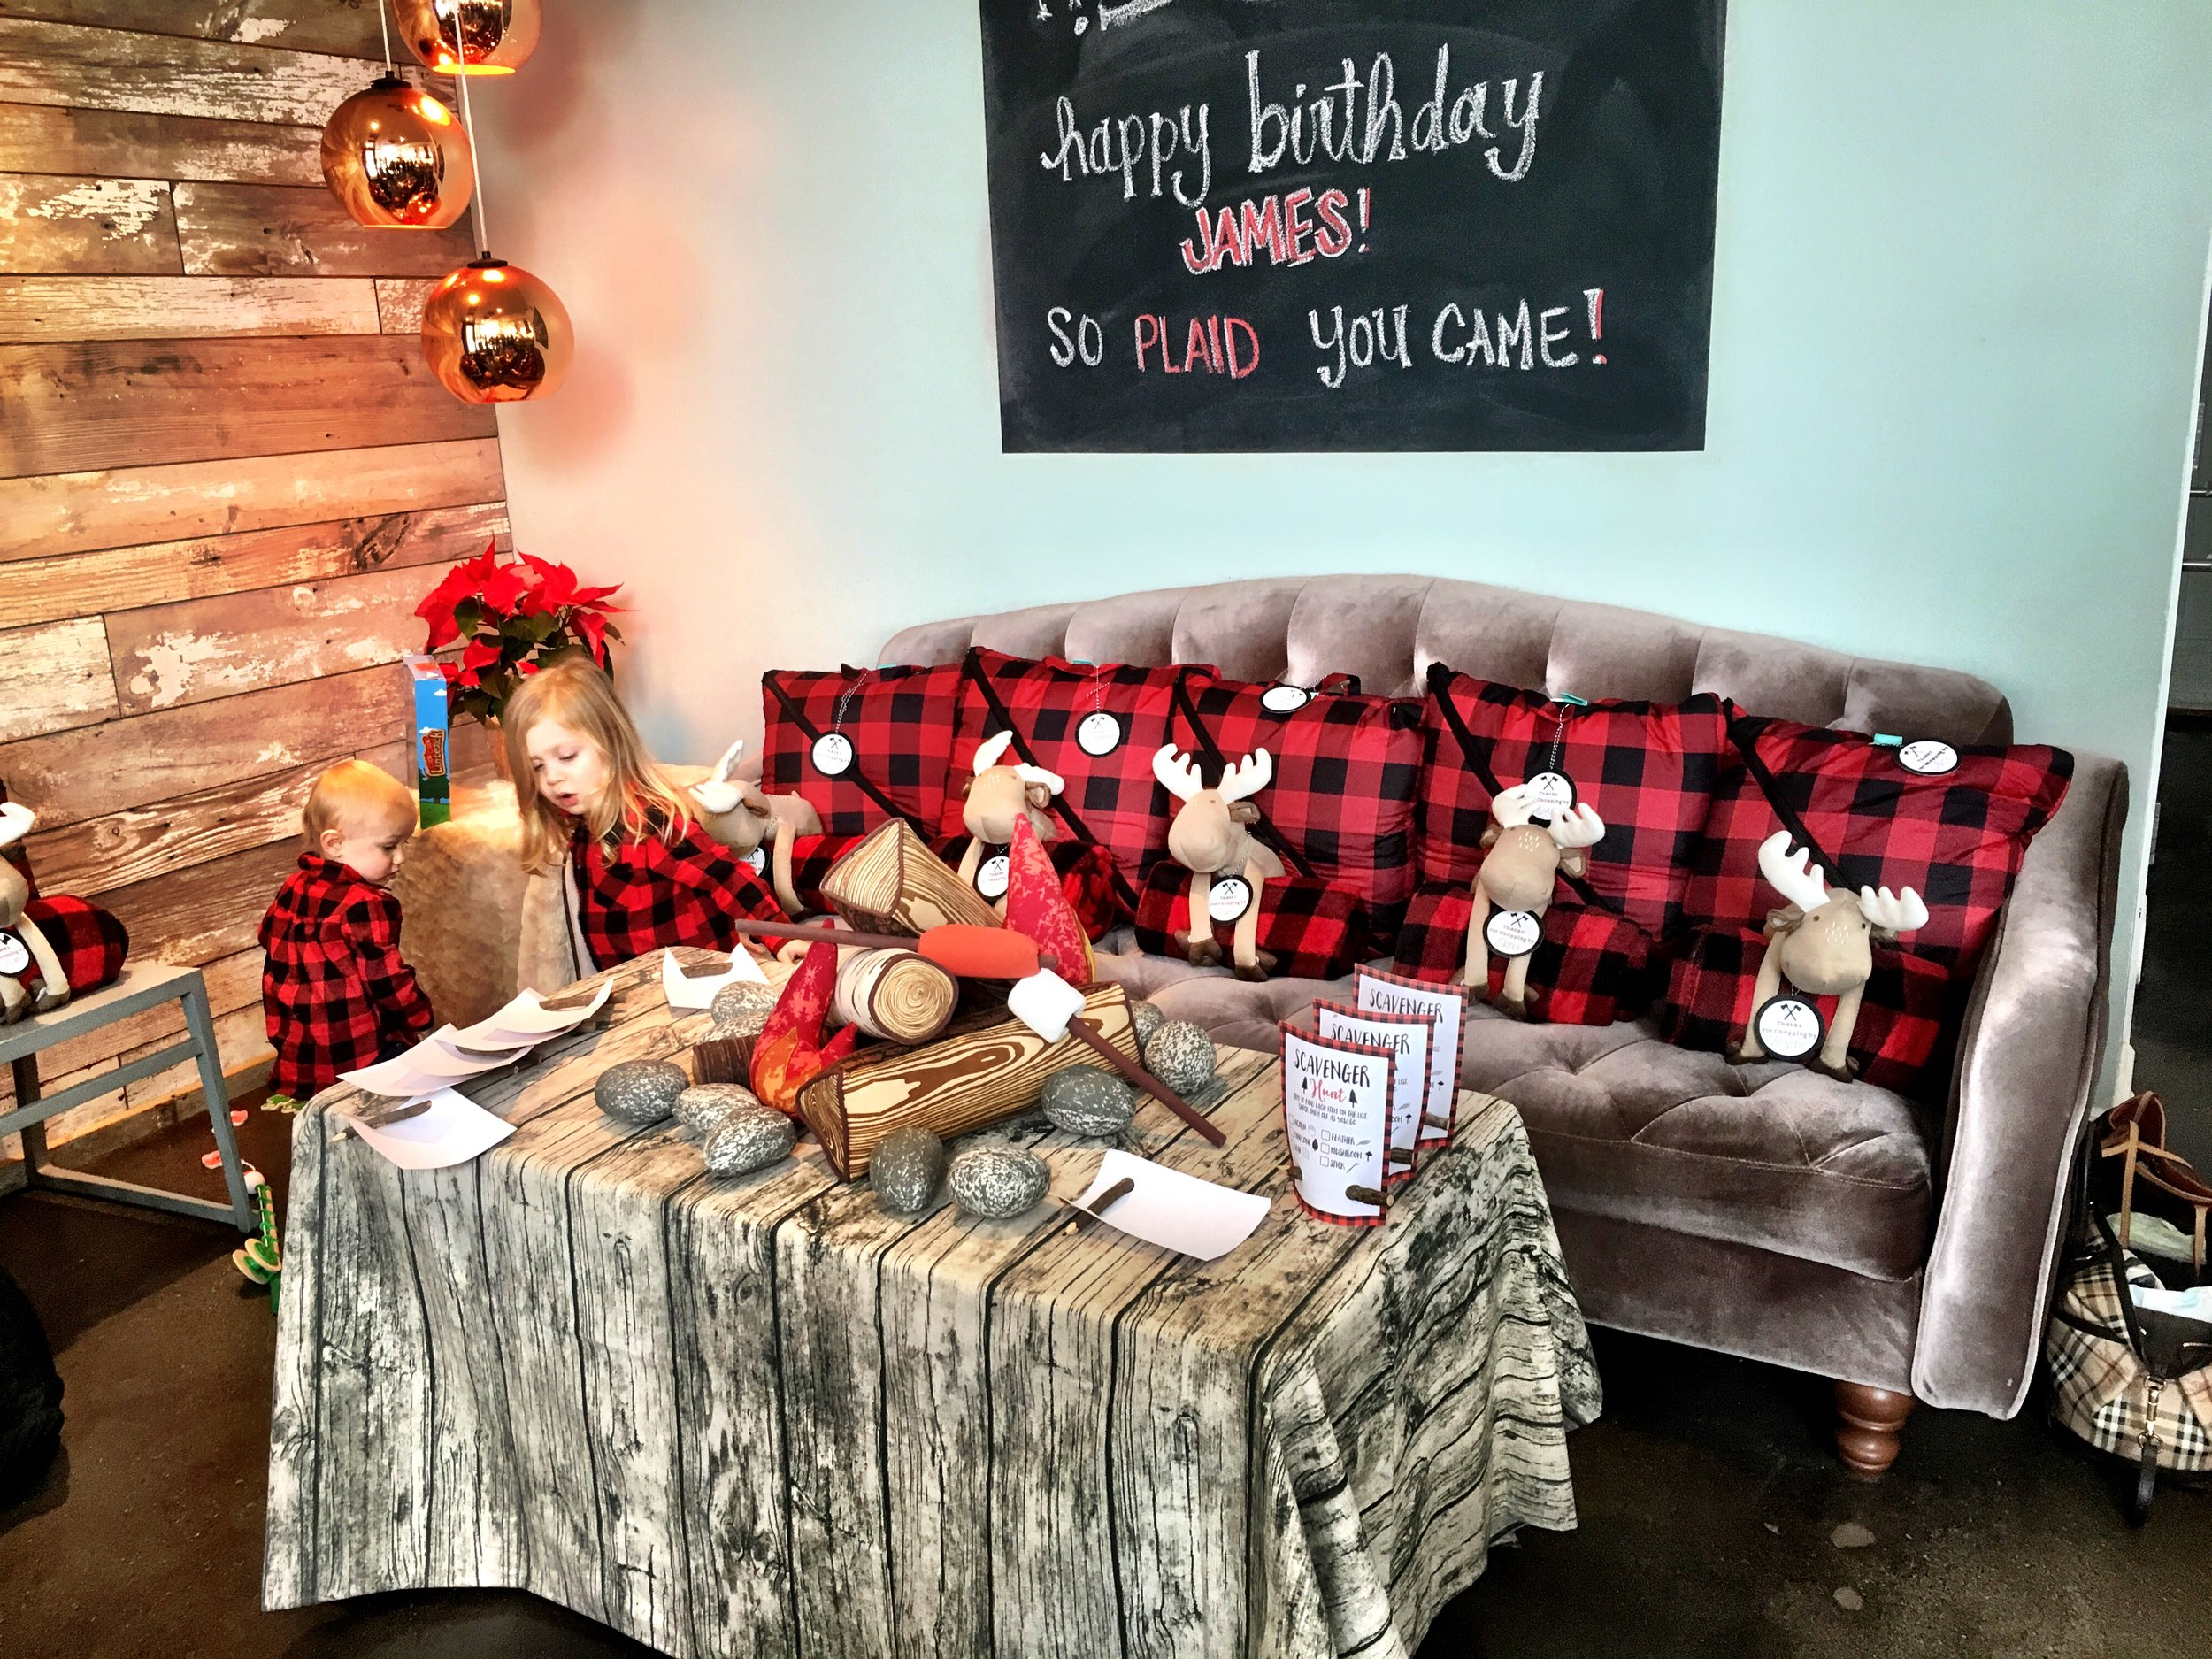 Buffalo check sleeping bags or blankets with a moose for the favors and an activity table complete with a campfire